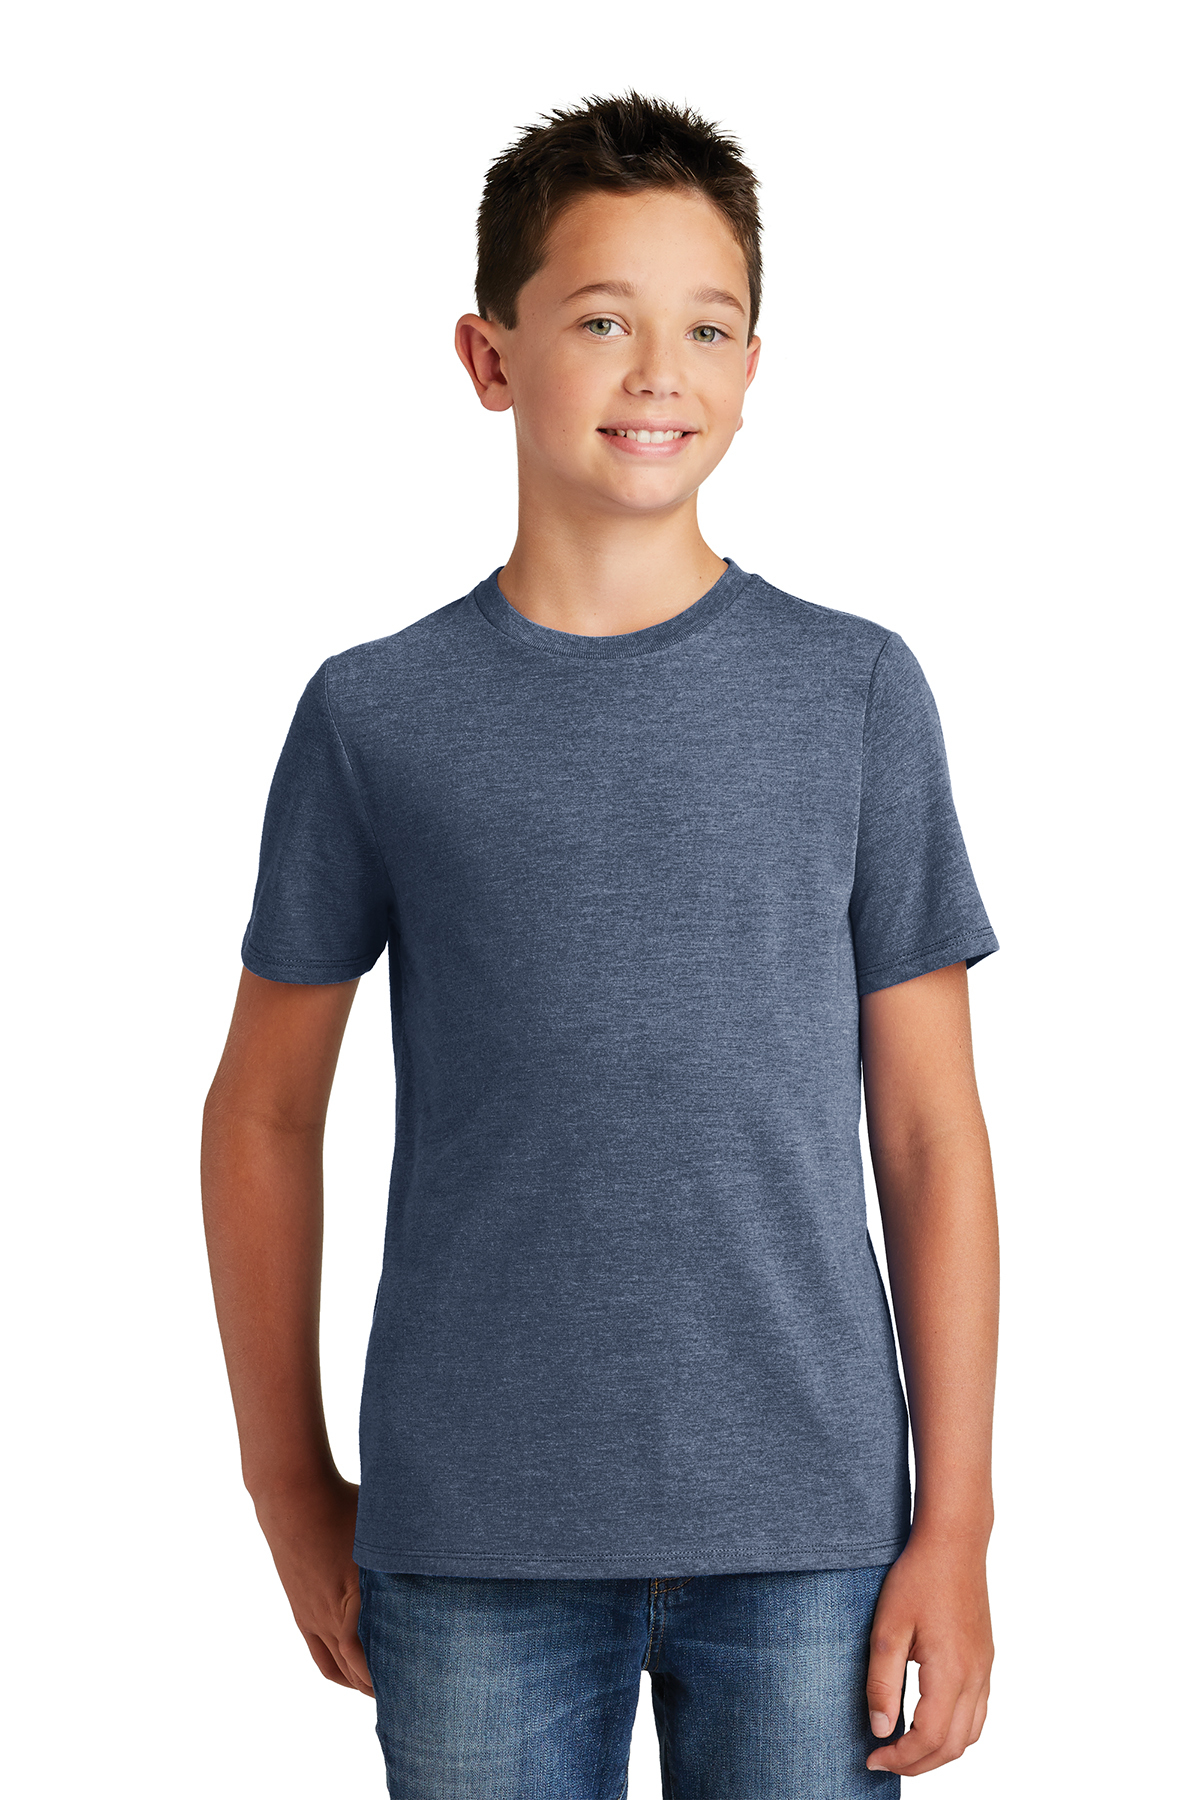 District Made DT130Y - Youth Perfect Tri Crew Tee